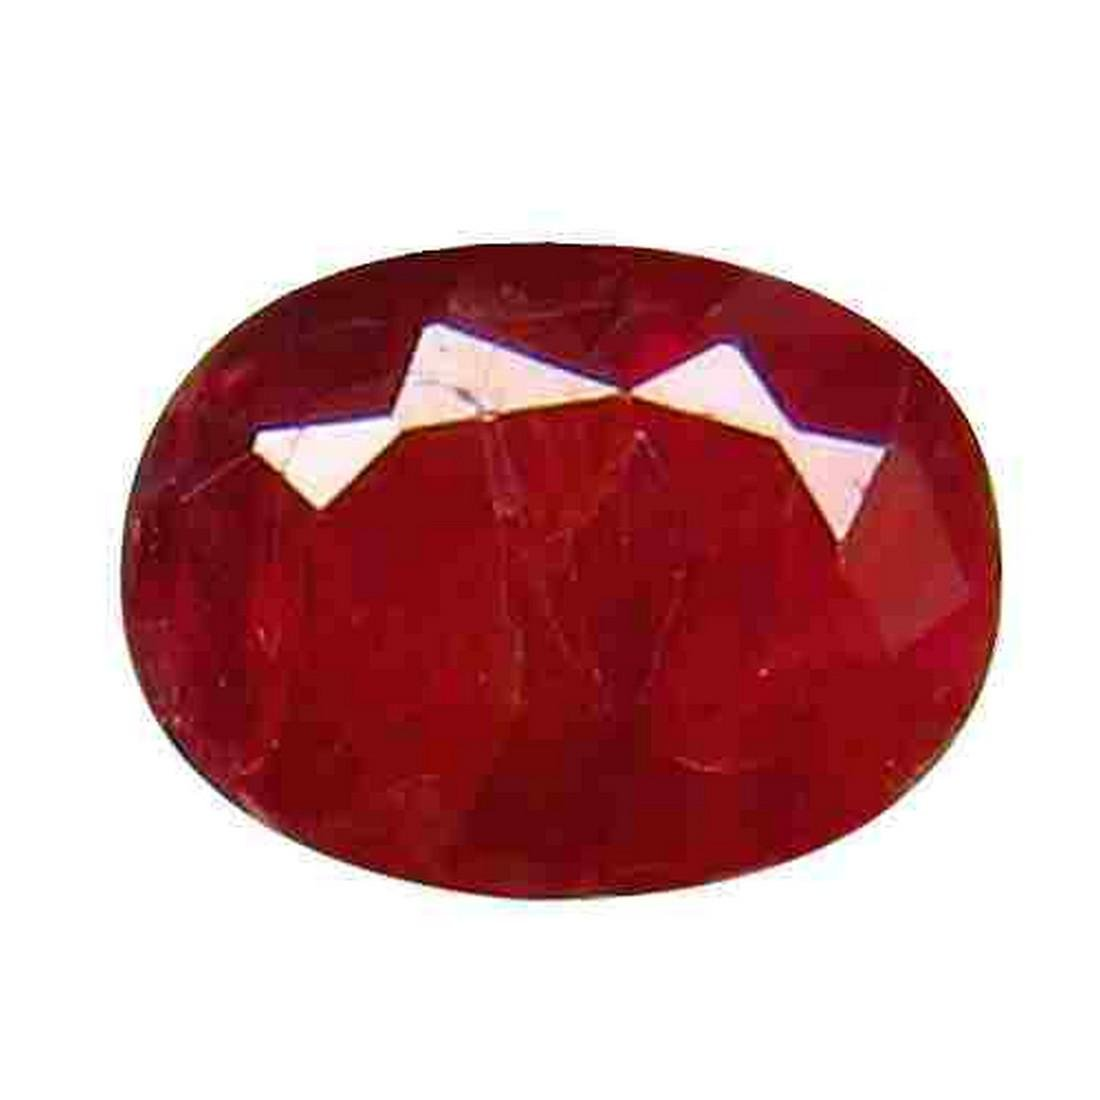 0.52 ct natural pigeon blood red ruby